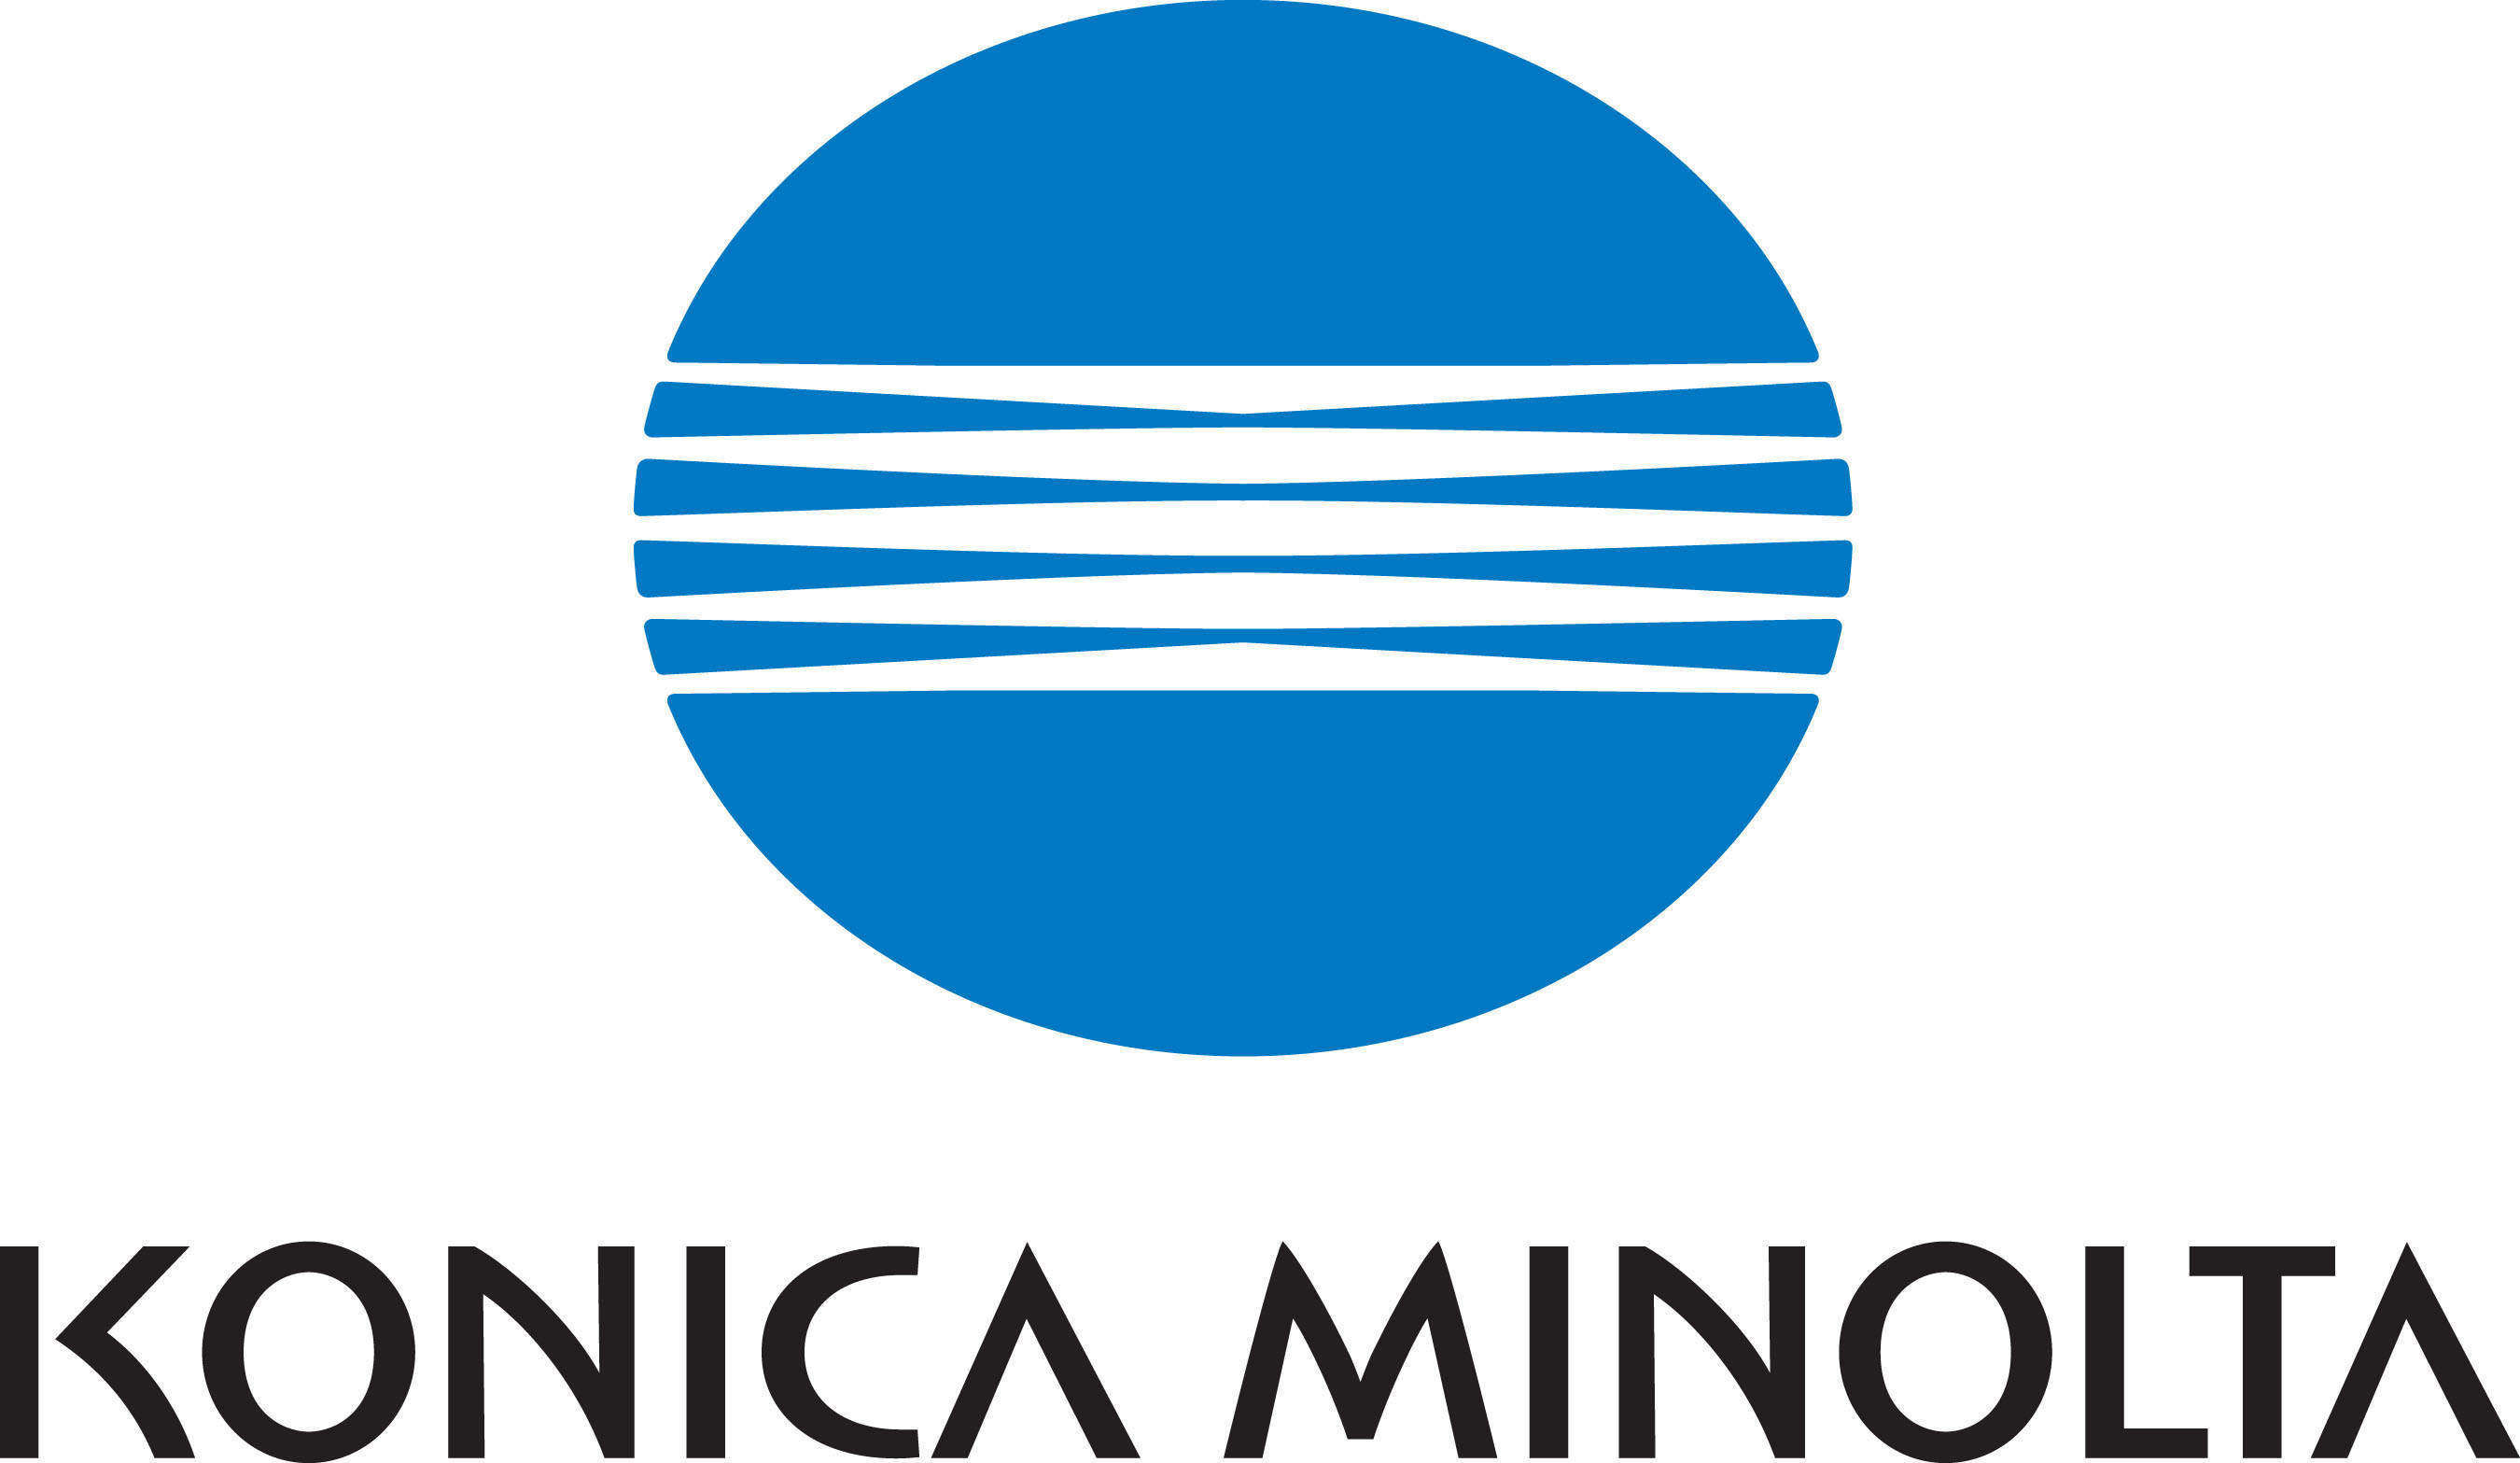 Konica Minolta Medical Imaging Hosts Webinar on New Solutions to Improve Diagnostic Viewing, Workflow Optimization and Physician-Patient Collaboration